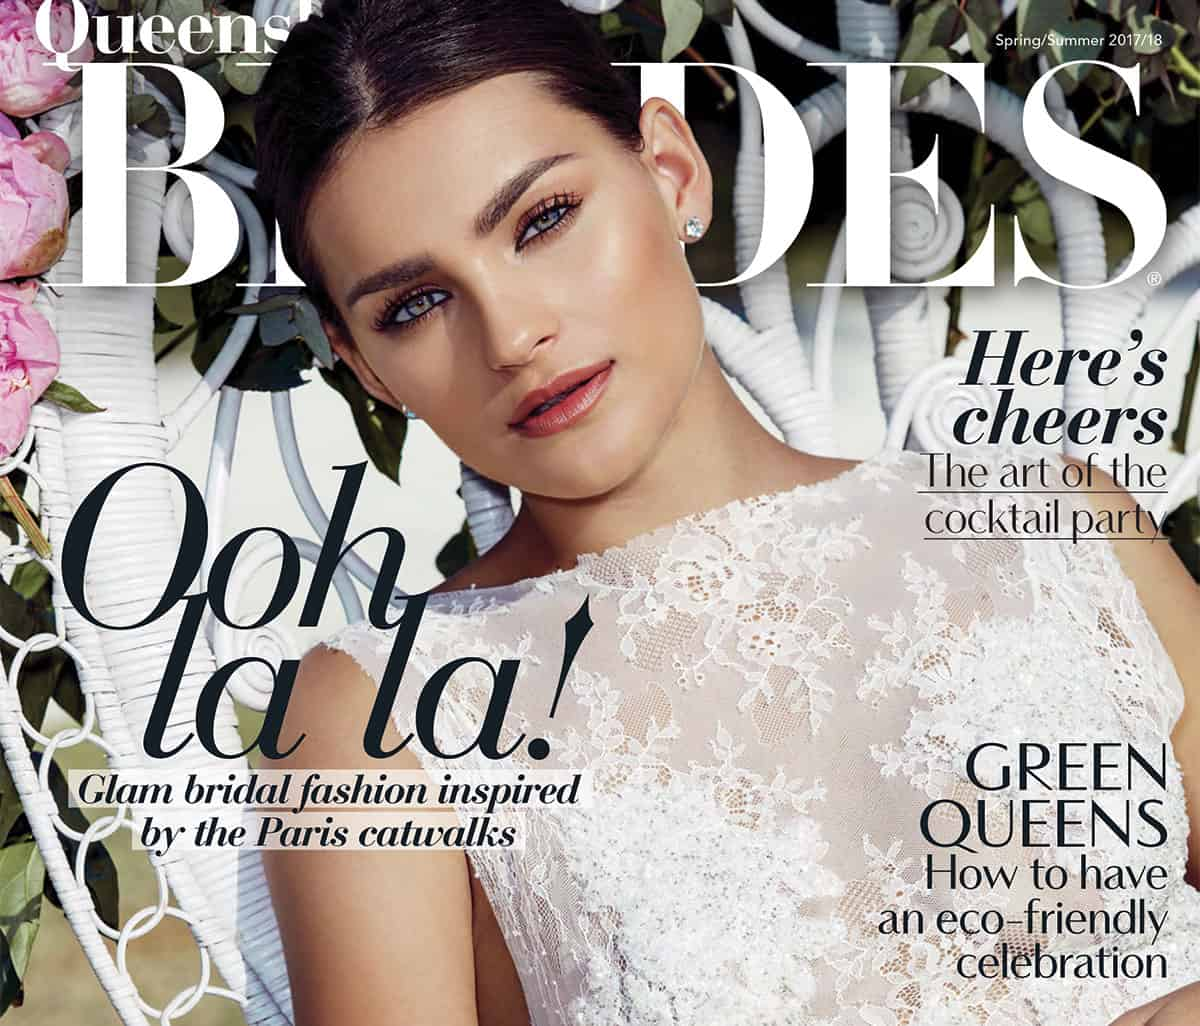 Queensland Brides Spring Summer 2017